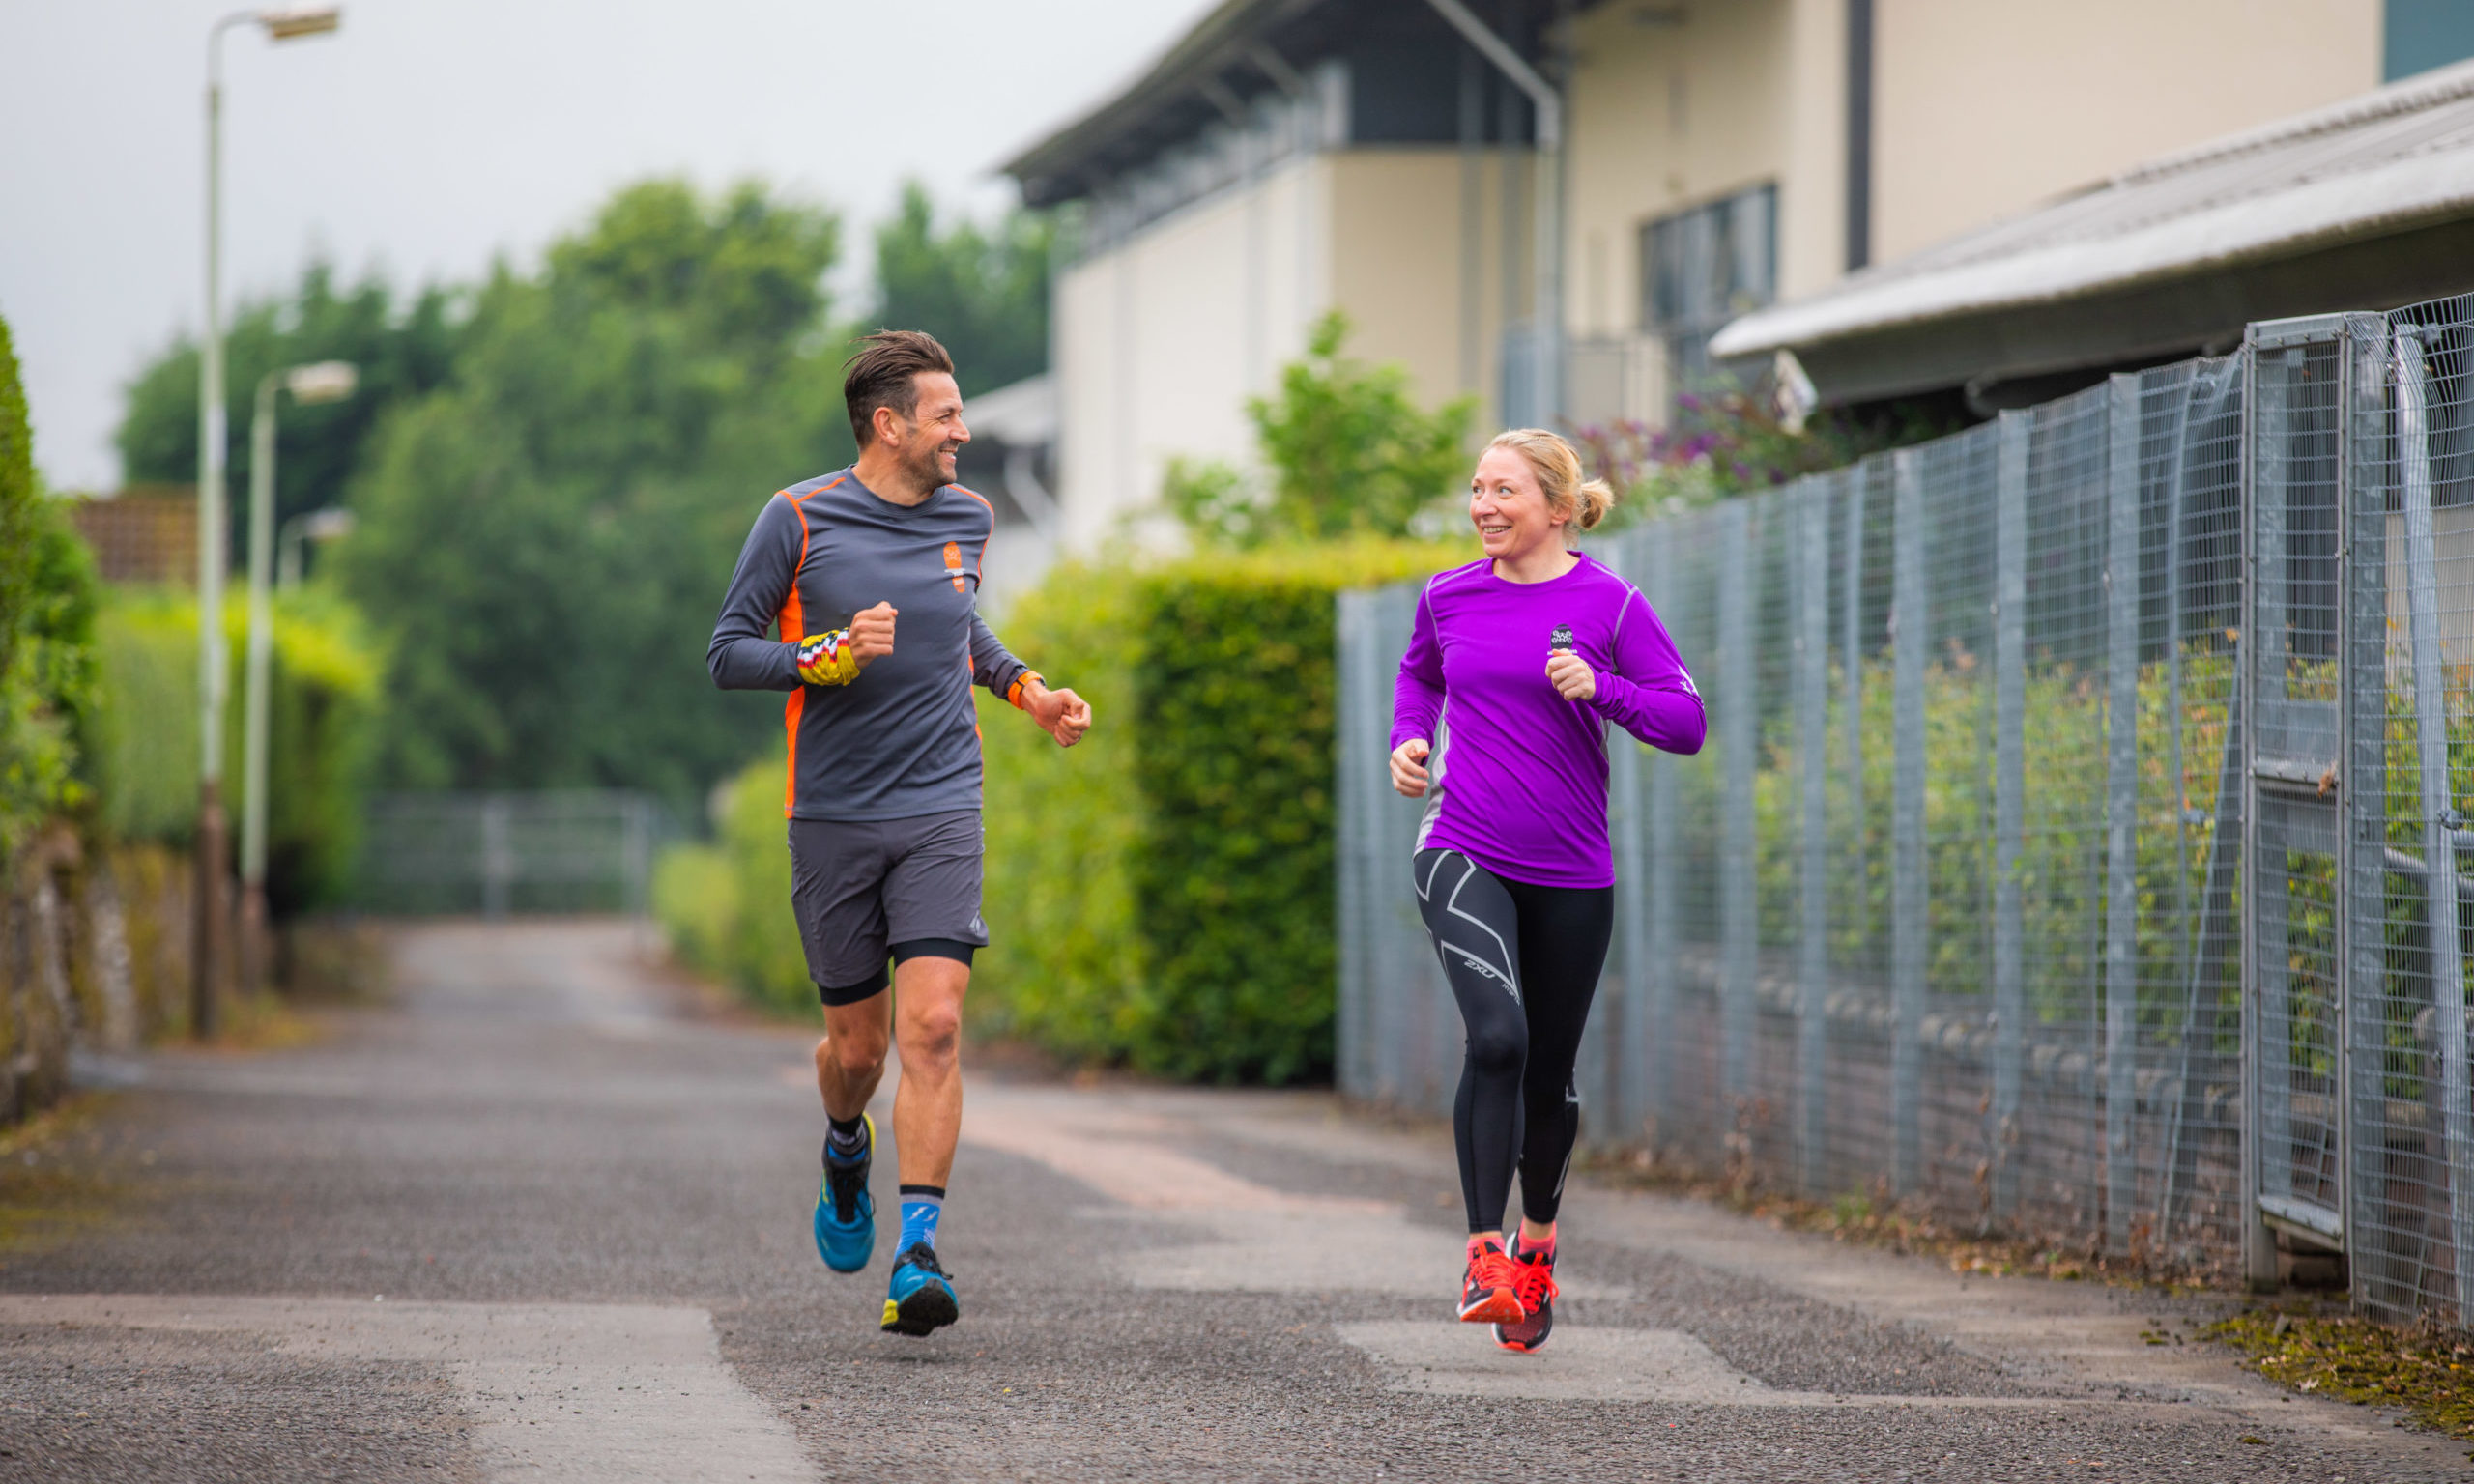 Auchterarder Running Festival organisers Fiona and Steven Watt are looking forward to going digital.